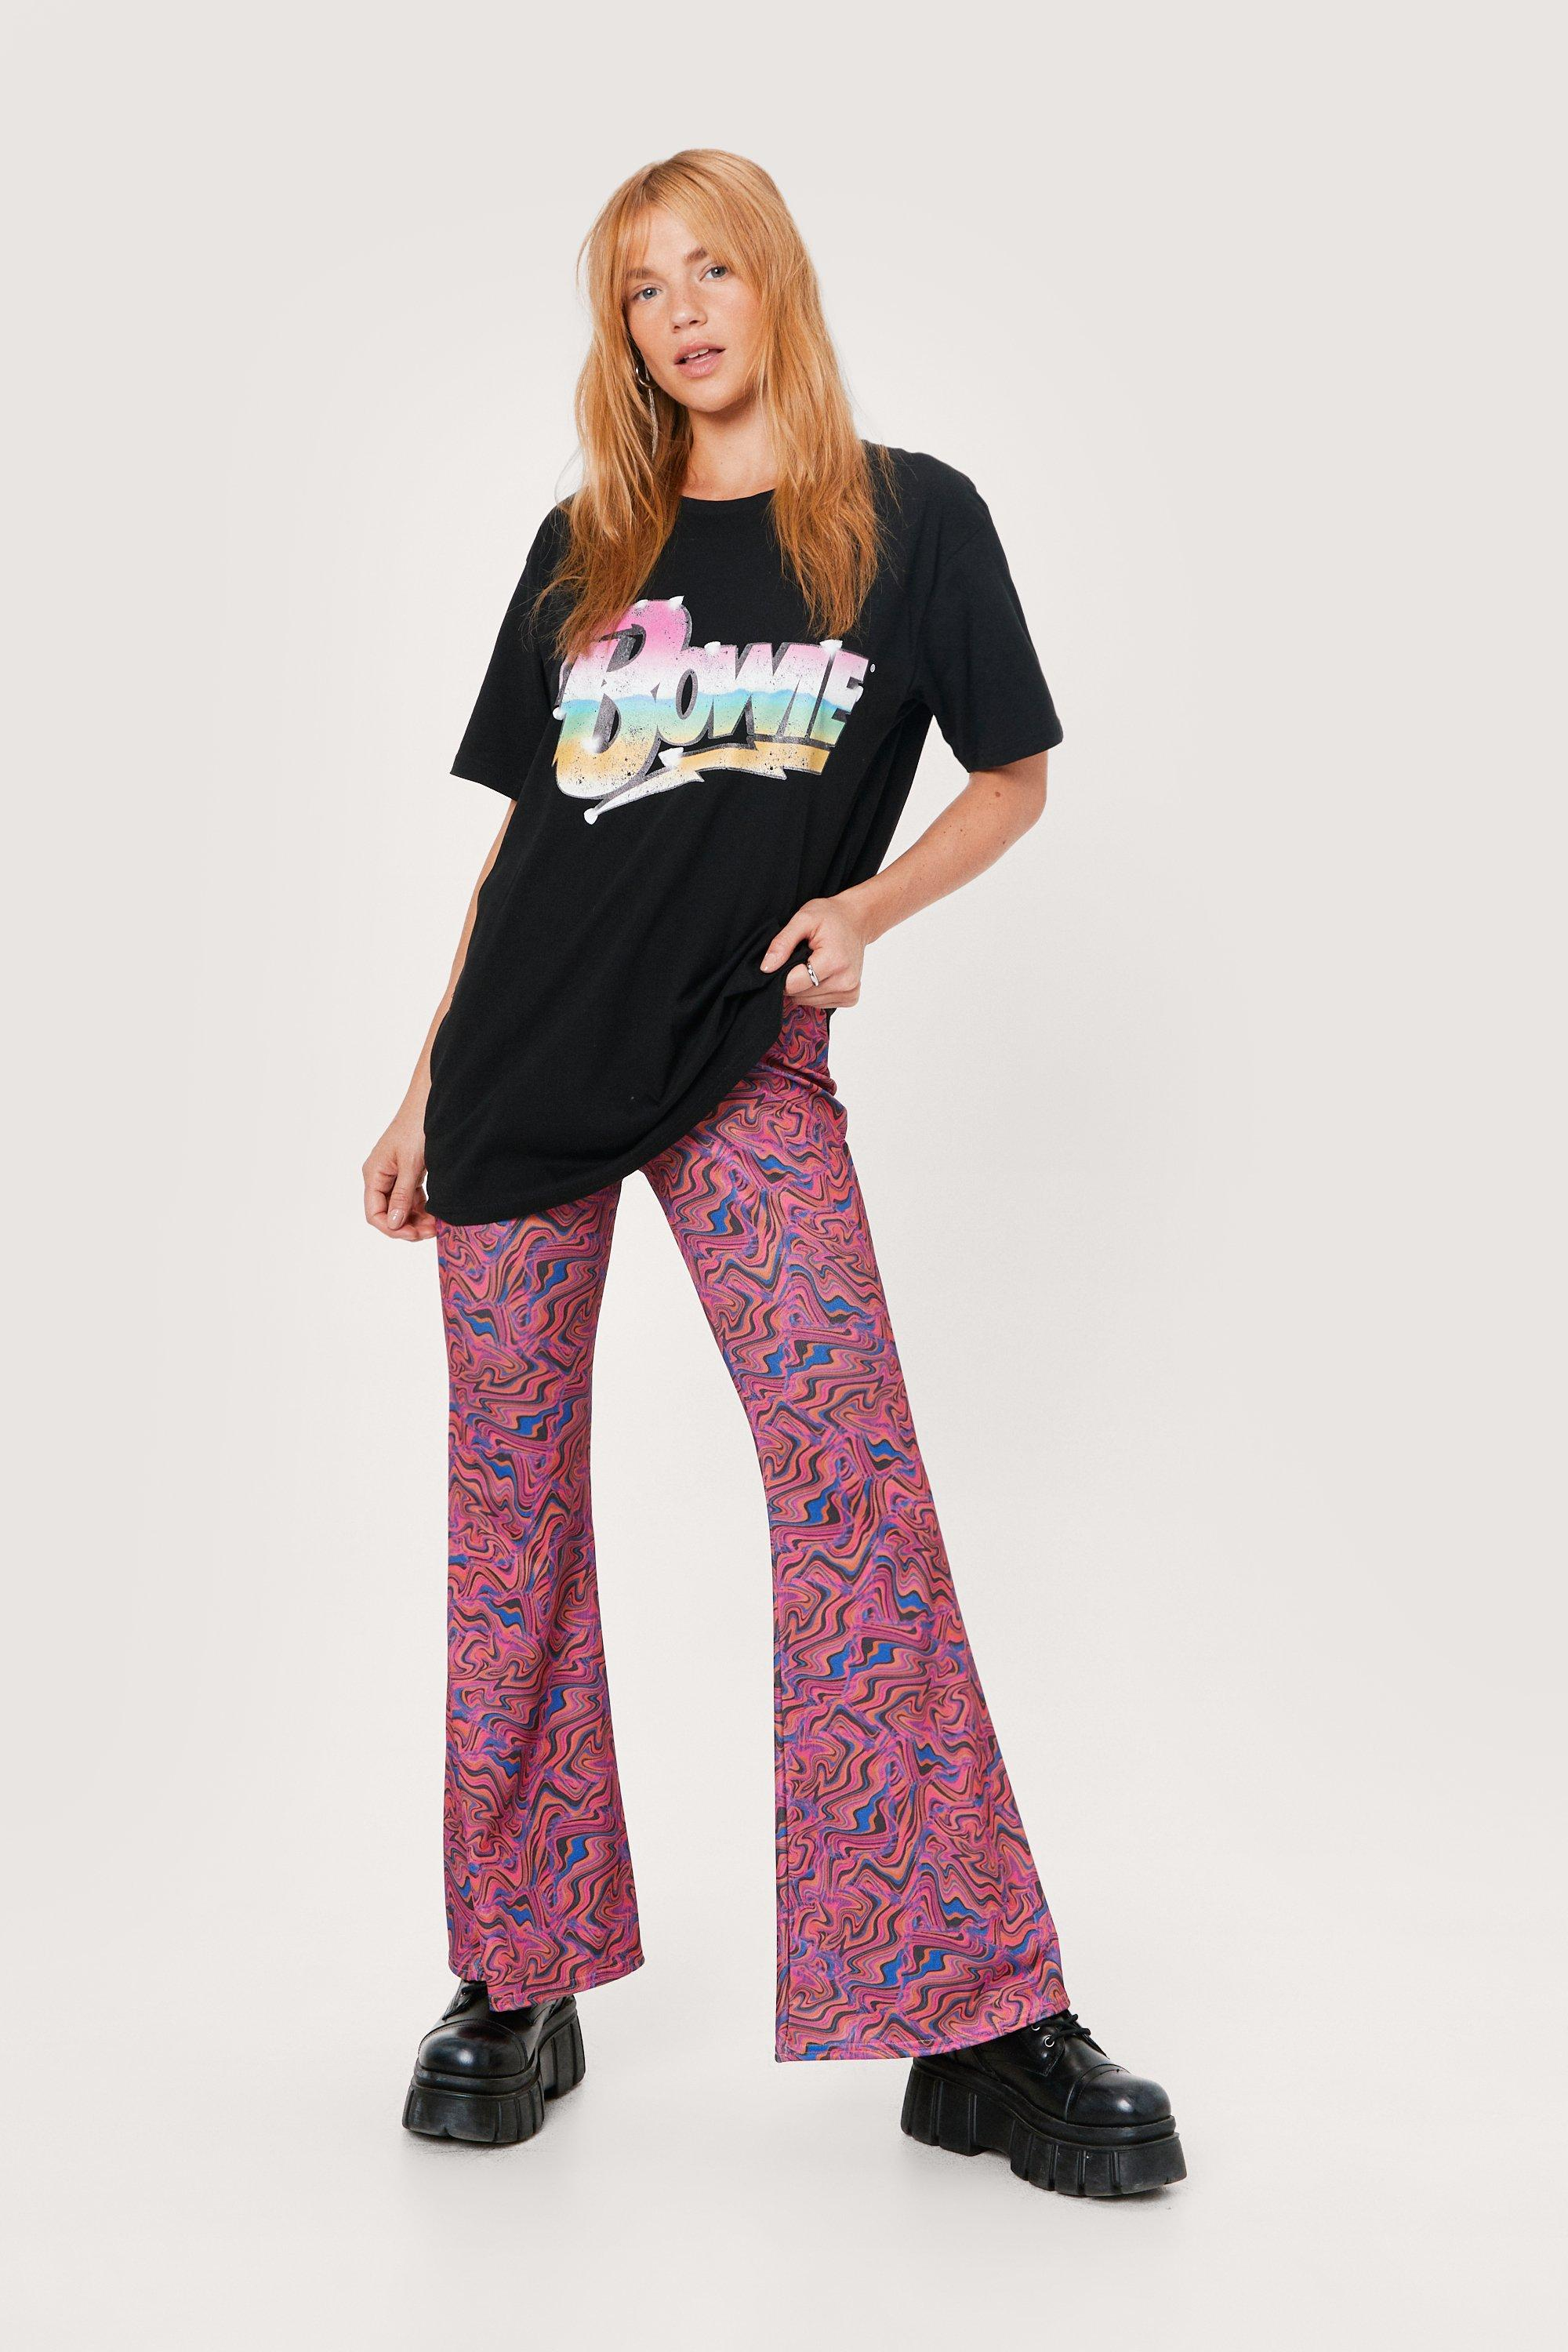 1960s Style Clothing & 60s Fashion Womens Petite Marble Print High Waisted Flare Pants - Pink - 10 $21.50 AT vintagedancer.com